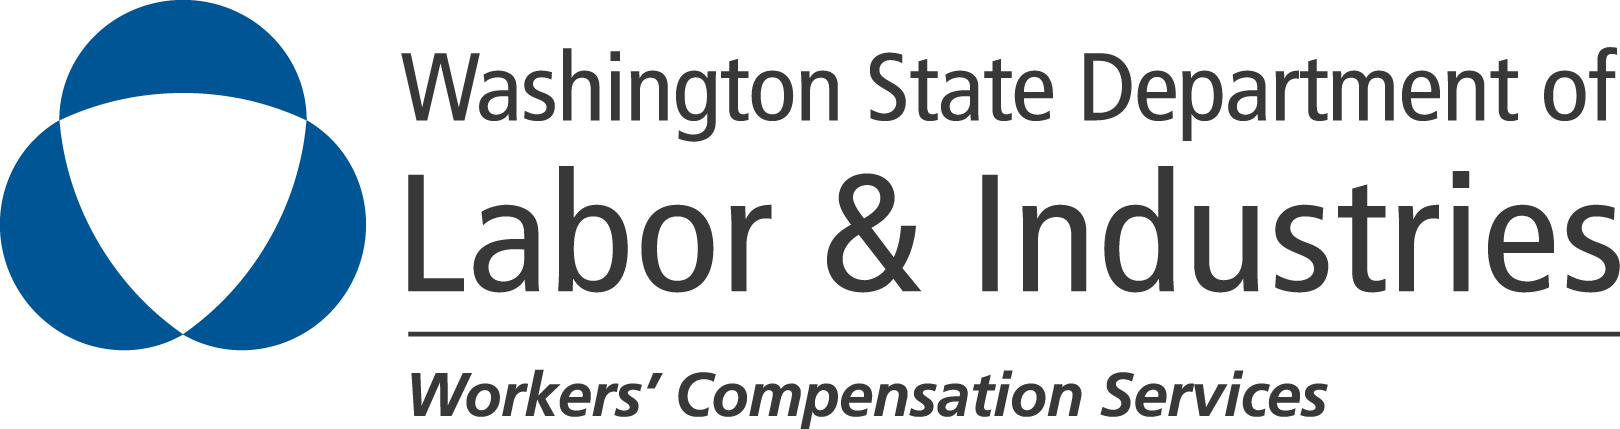 Washington-Labor-and-Industries.png